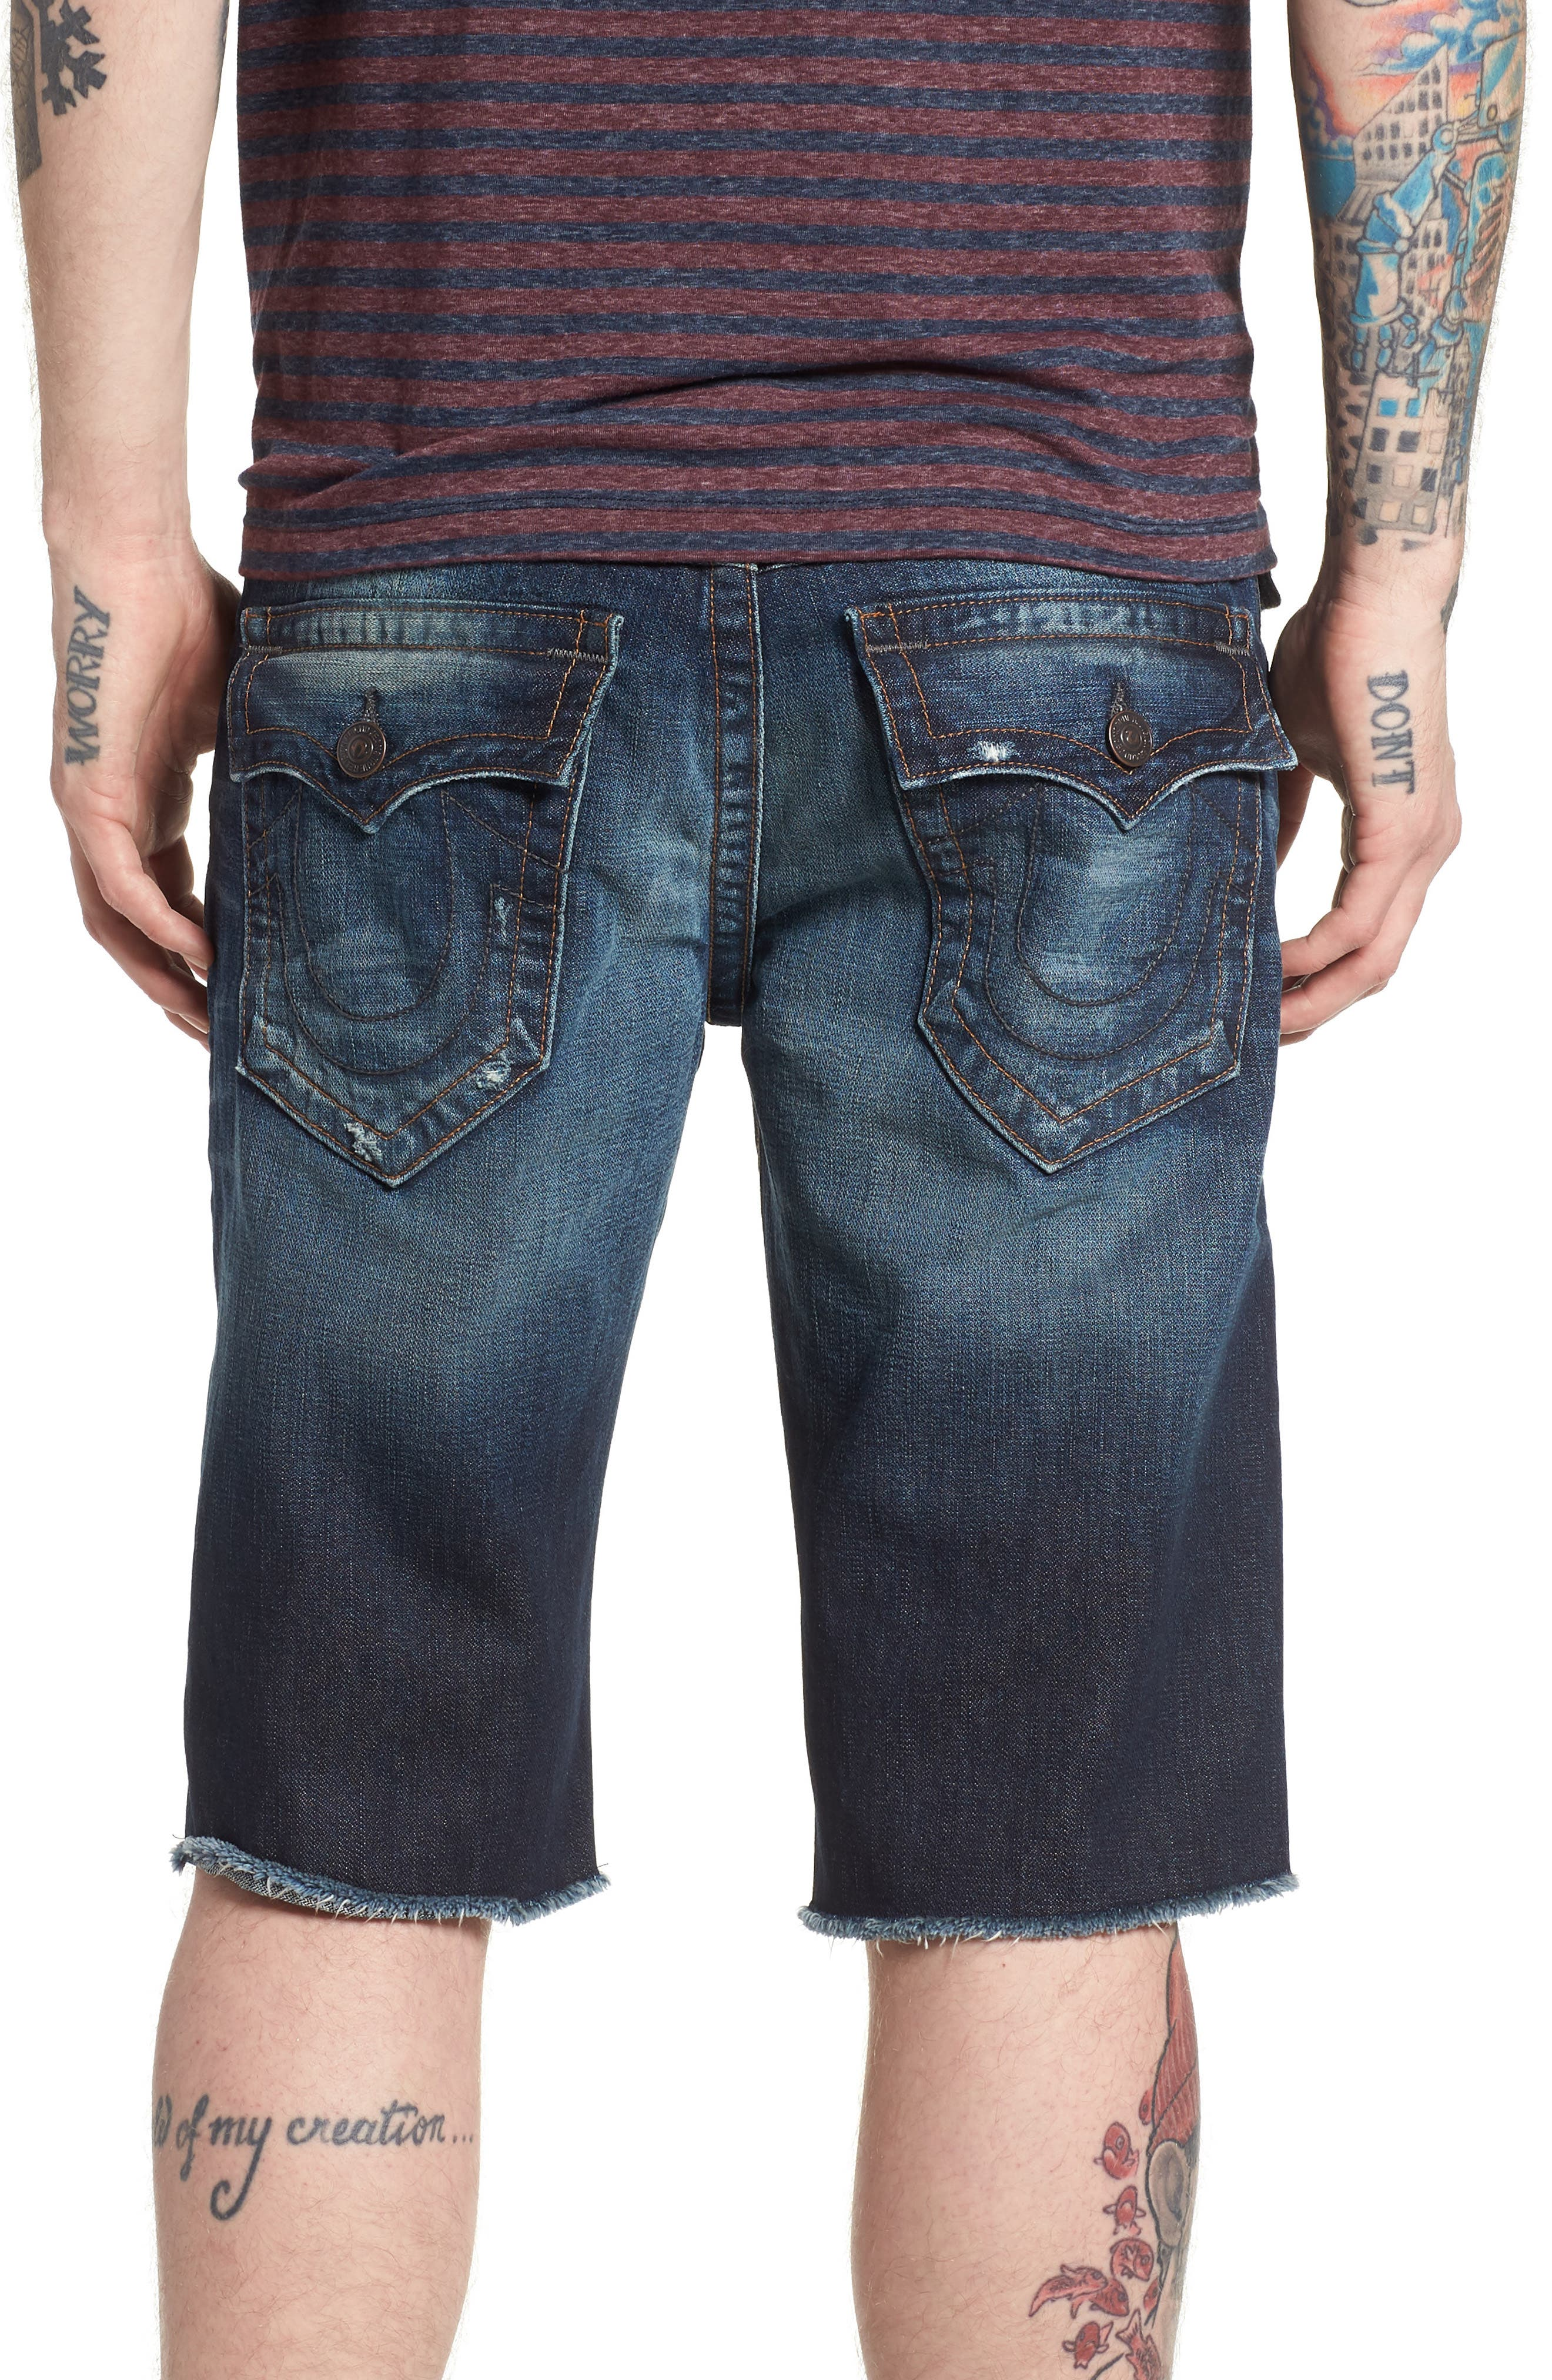 Ricky Relaxed Fit Denim Shorts,                             Alternate thumbnail 2, color,                             Eqrd Mignight Menace